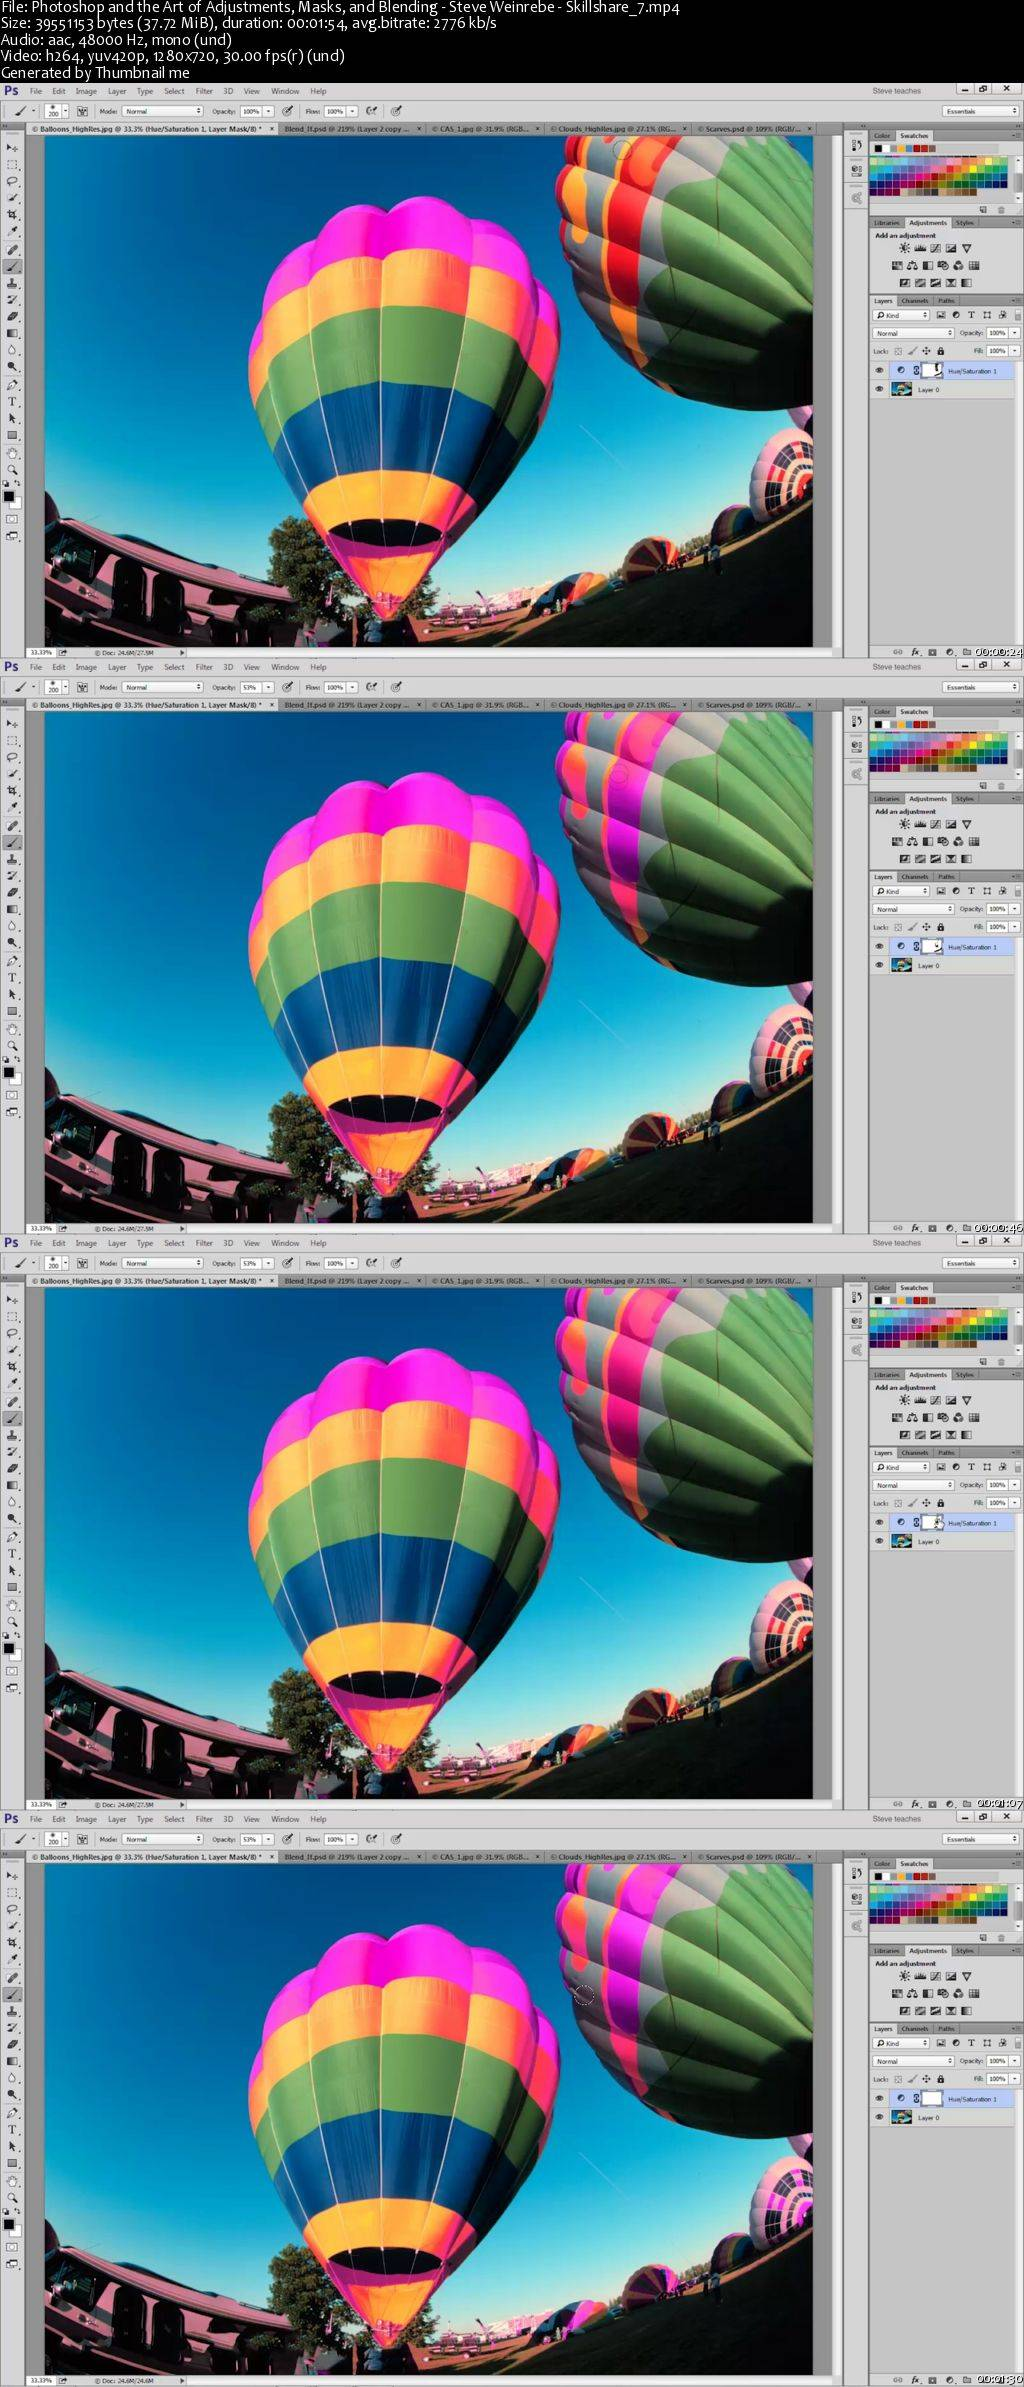 Photoshop and the Art of Adjustments, Masks, and Blending